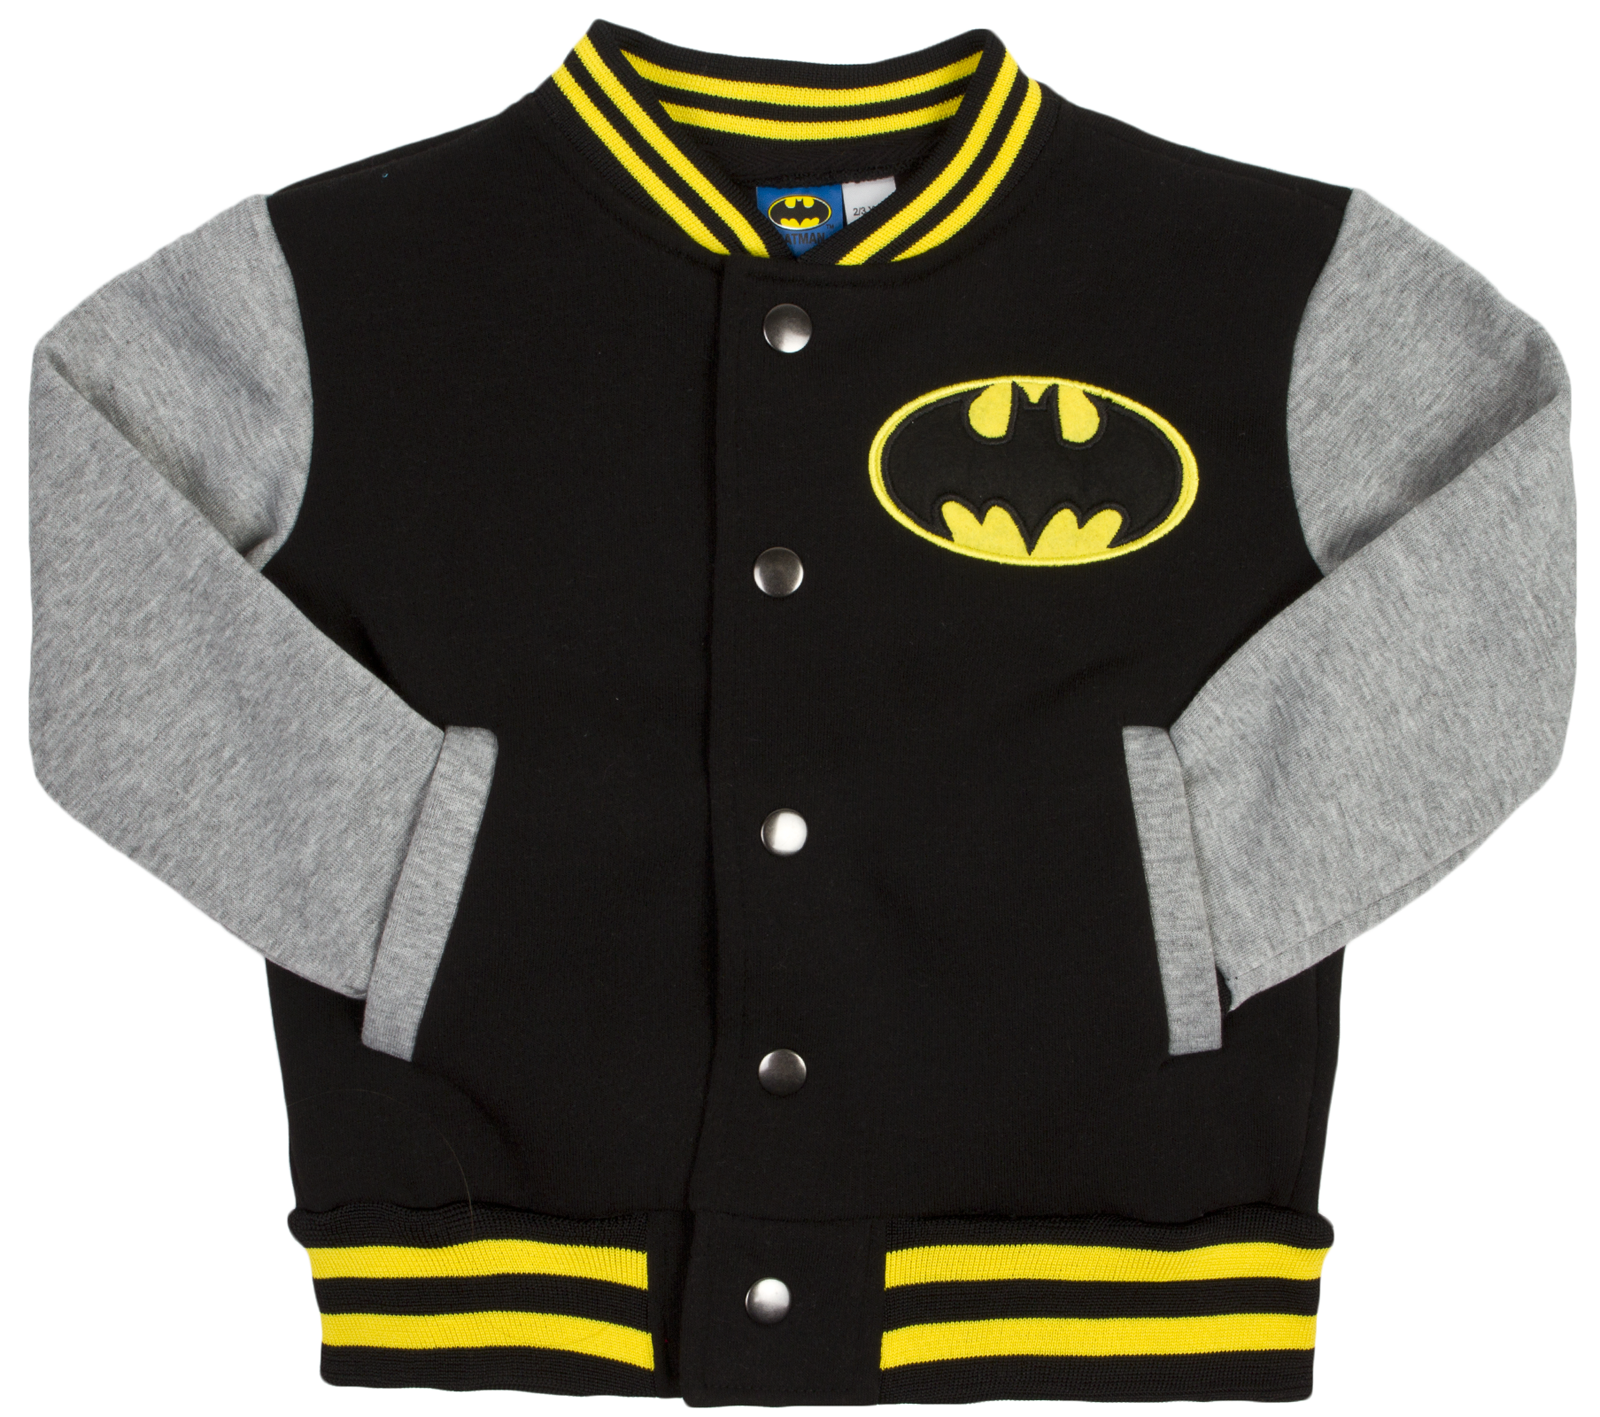 Shop Target for Kids' Character Clothing you will love at great low prices. Free shipping on orders of $35+ or free same-day pick-up in store.